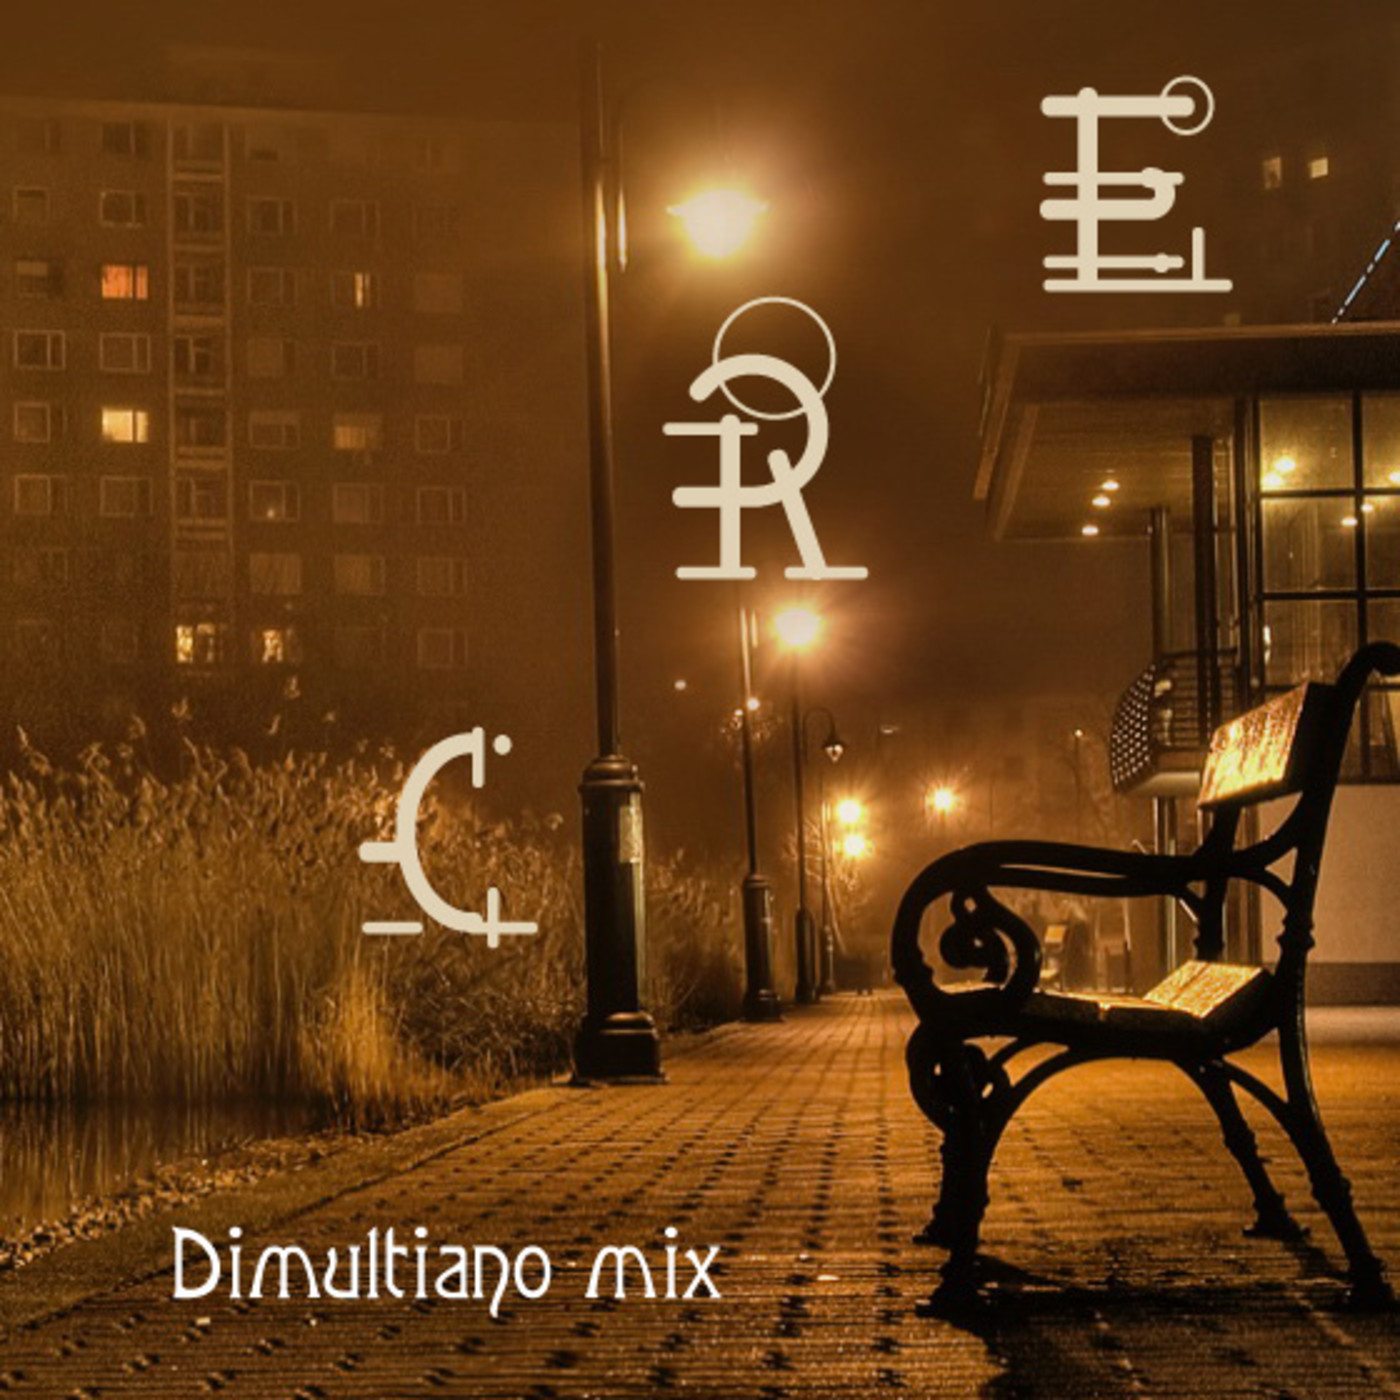 Dimultiano mix - ERC